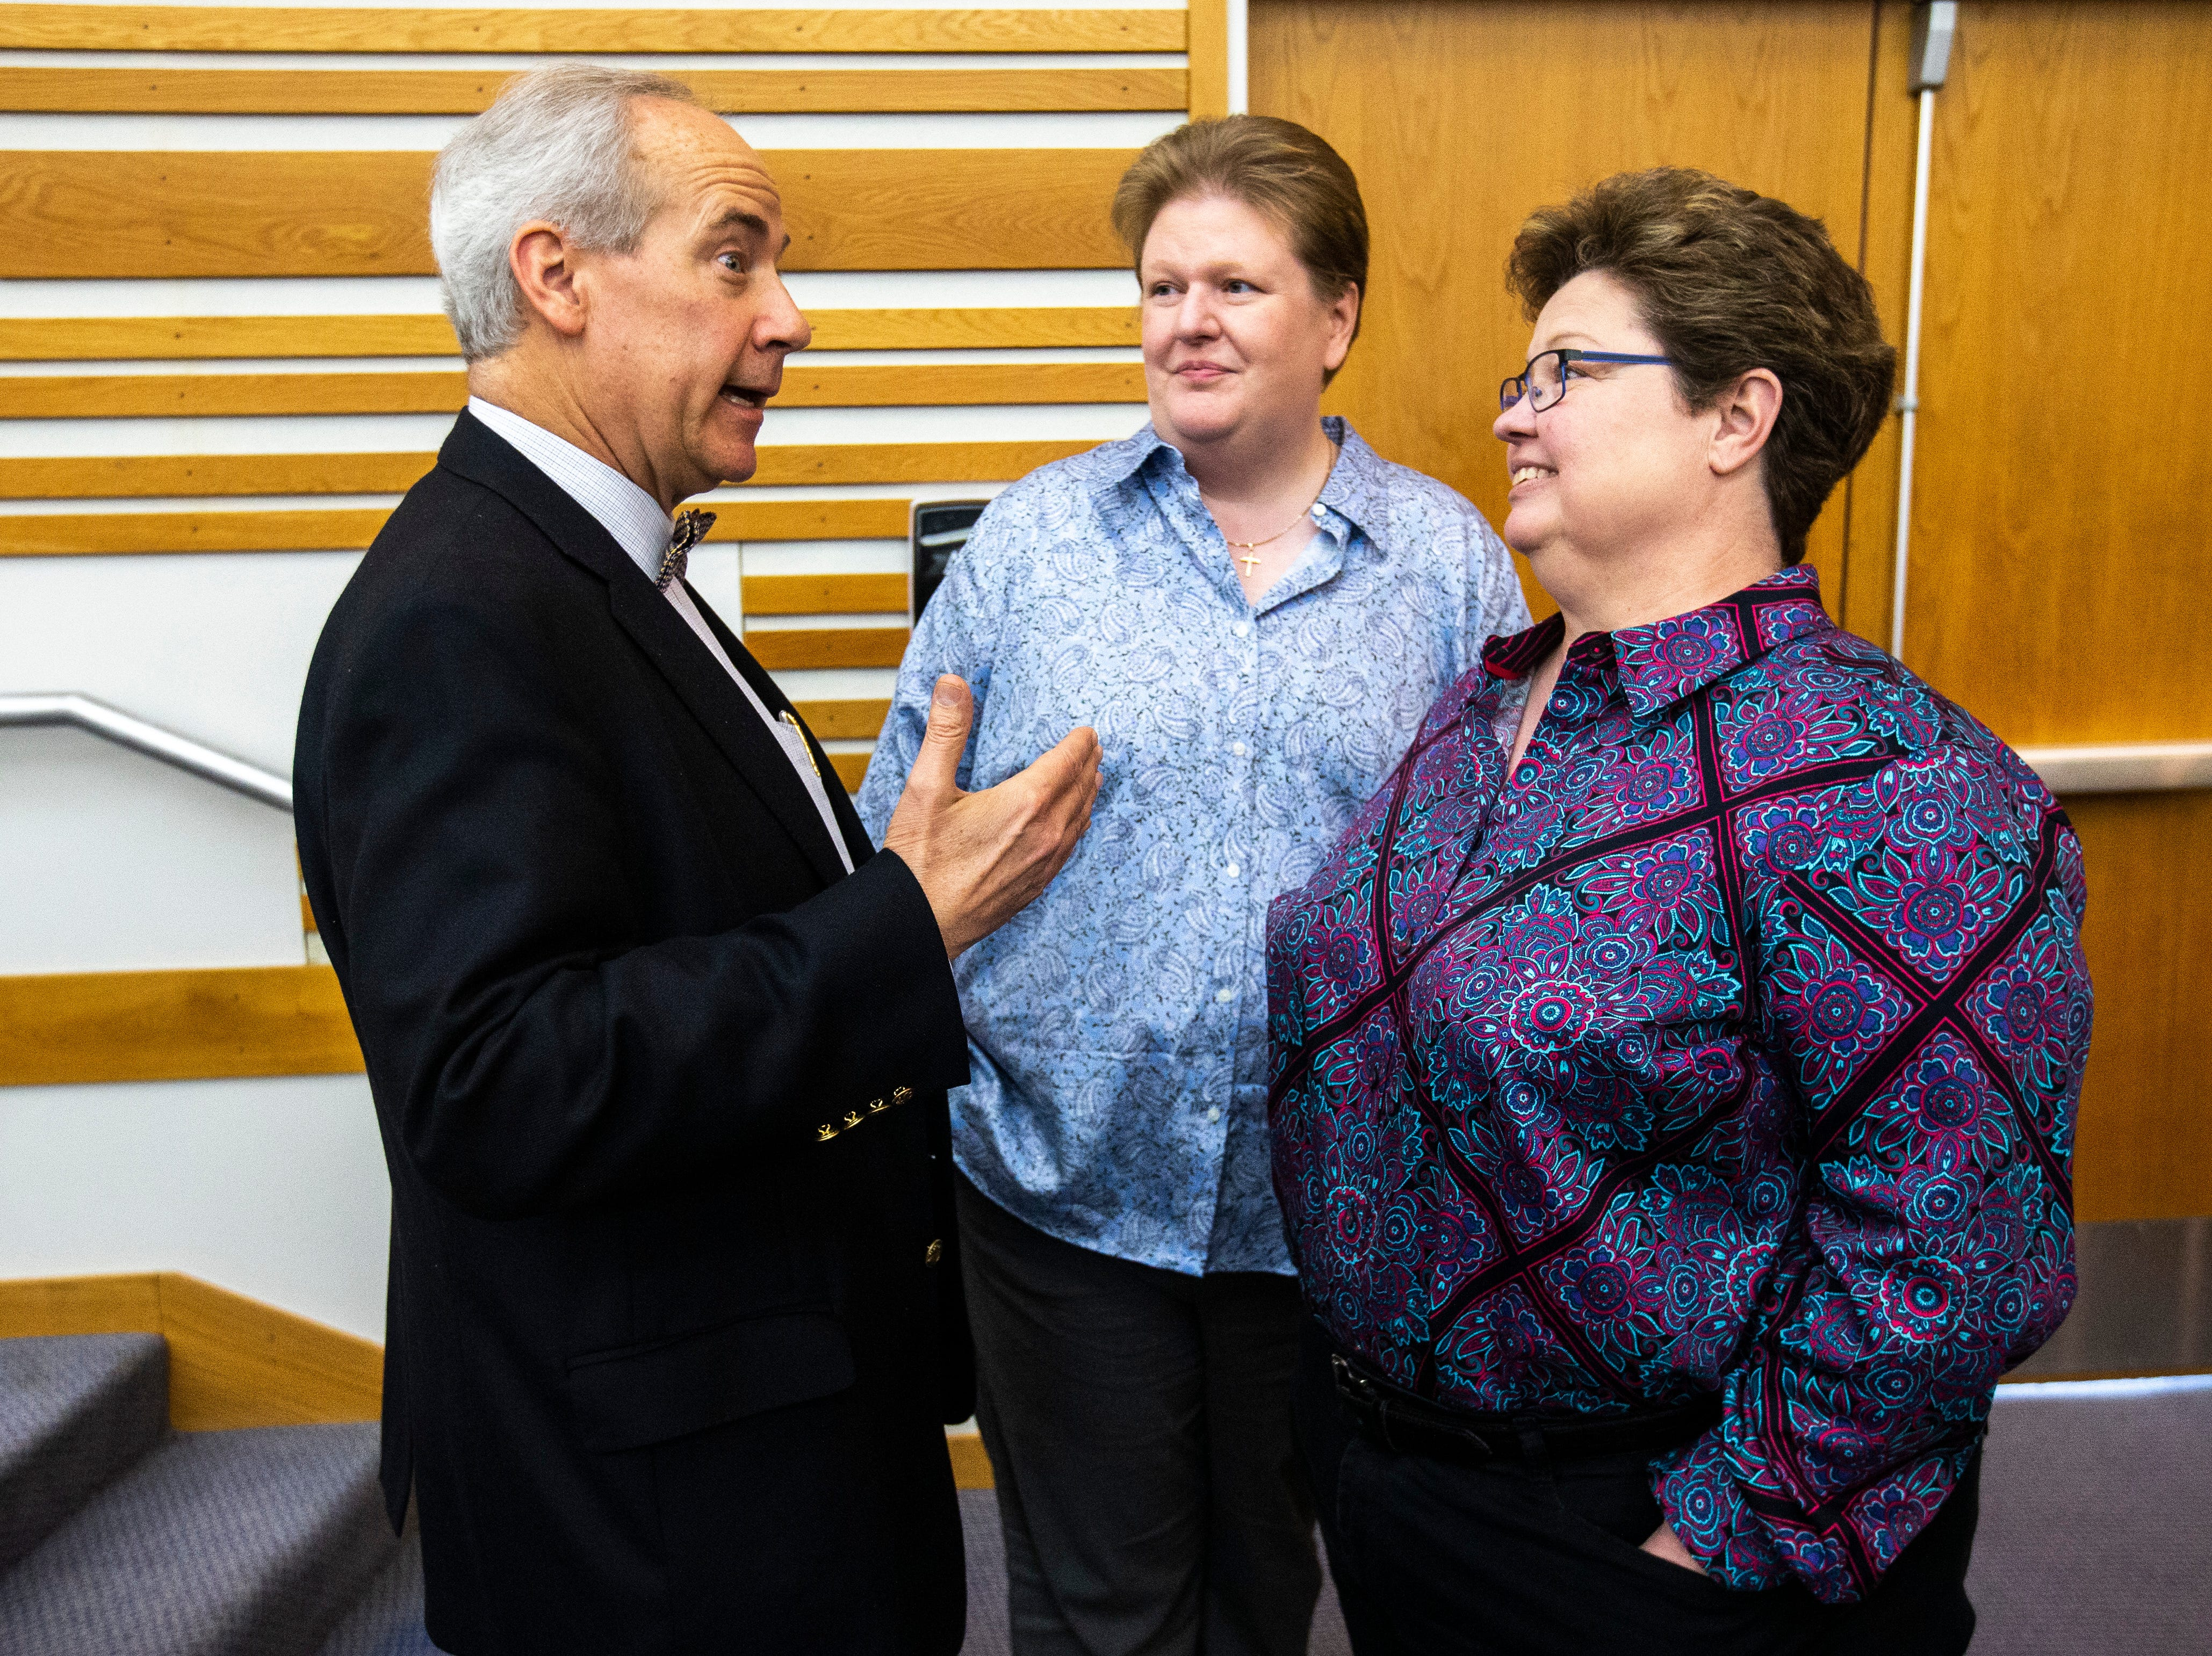 District 5 Judge Robert B. Hanson, left, talks with Kate and Trish Varnum after a panel regarding the Varnum v. Brien Iowa Supreme Court decision, Thursday, April 18, 2019, in the Boyd Law Building on the University of Iowa campus in Iowa City, Iowa.